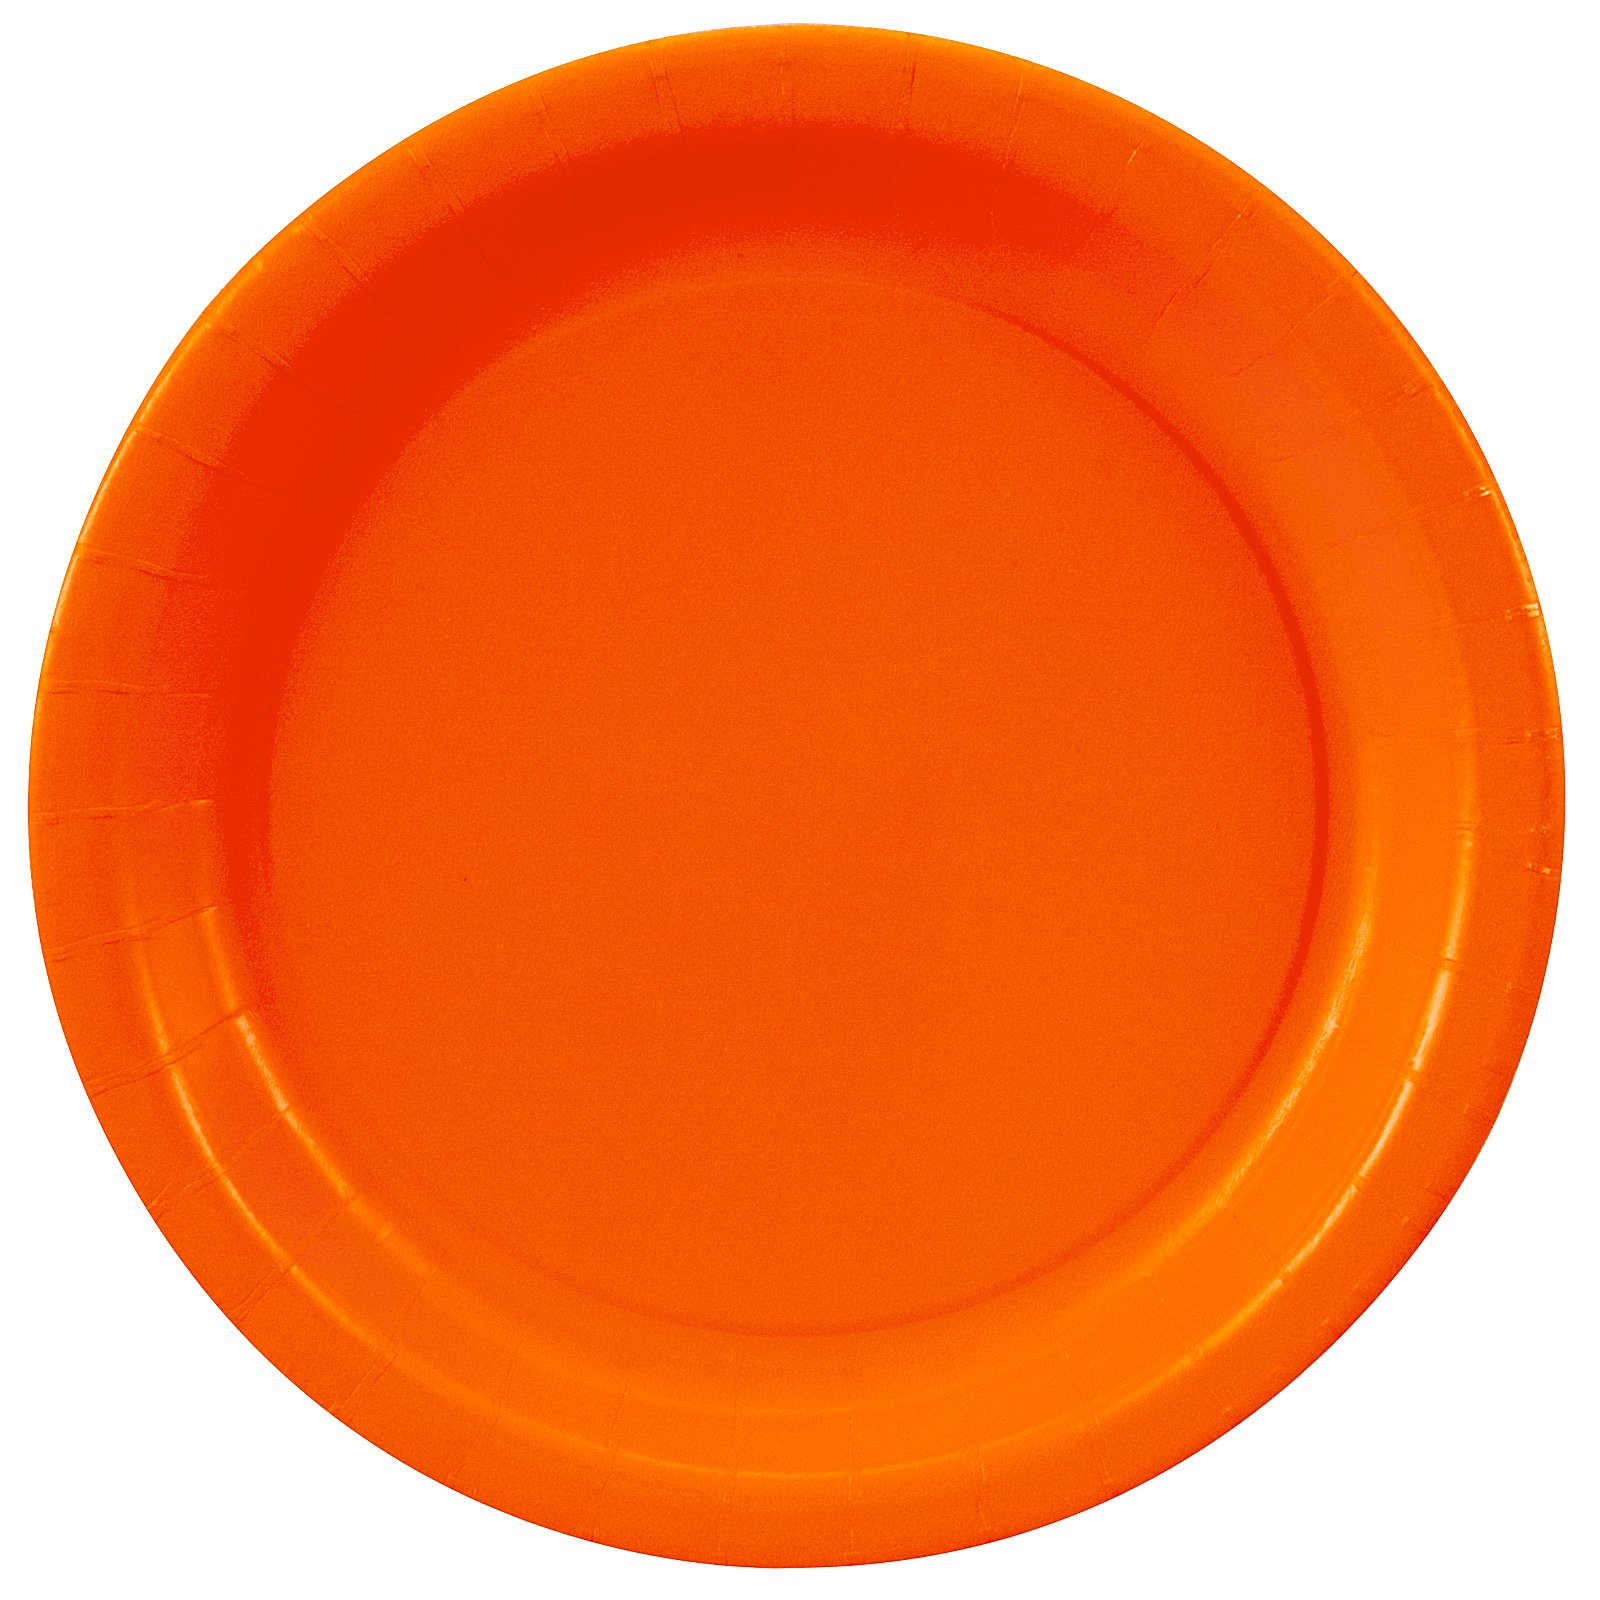 Sunkissed Orange (Orange) Dessert Plates (24 count)